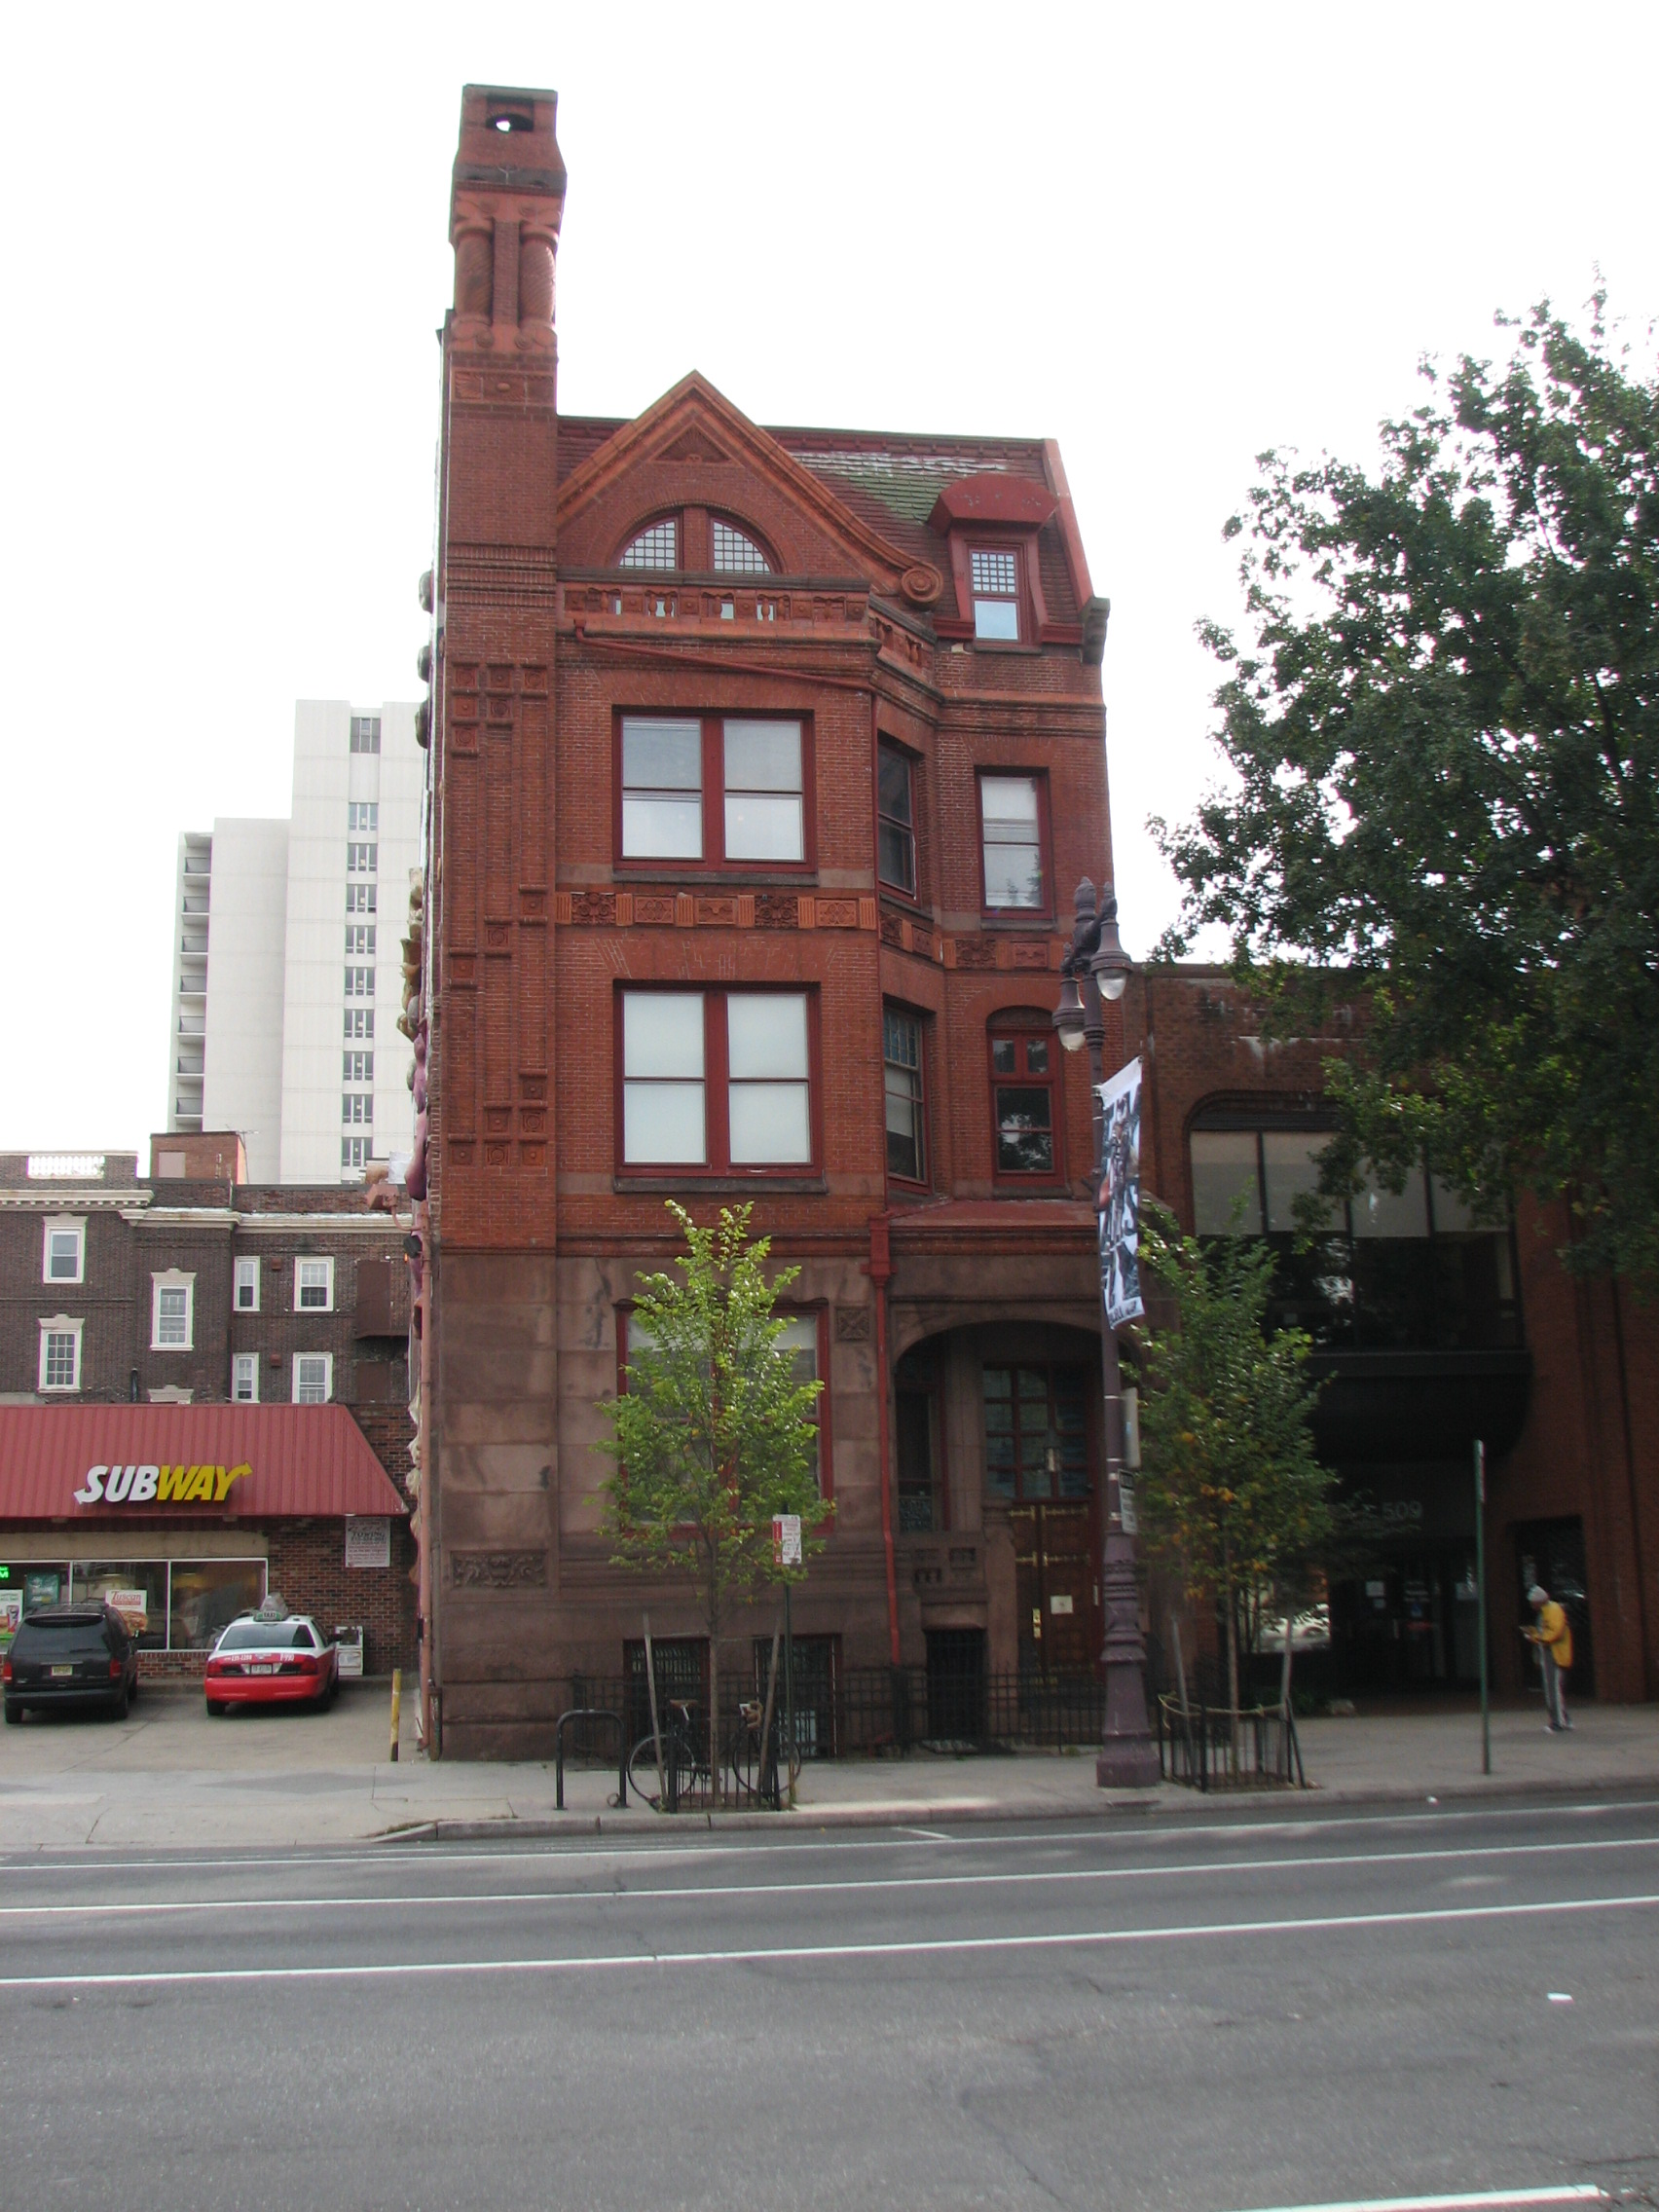 The J. Dundas Lippincott House, 507 S. Broad St., was designed by George T. Pearson.